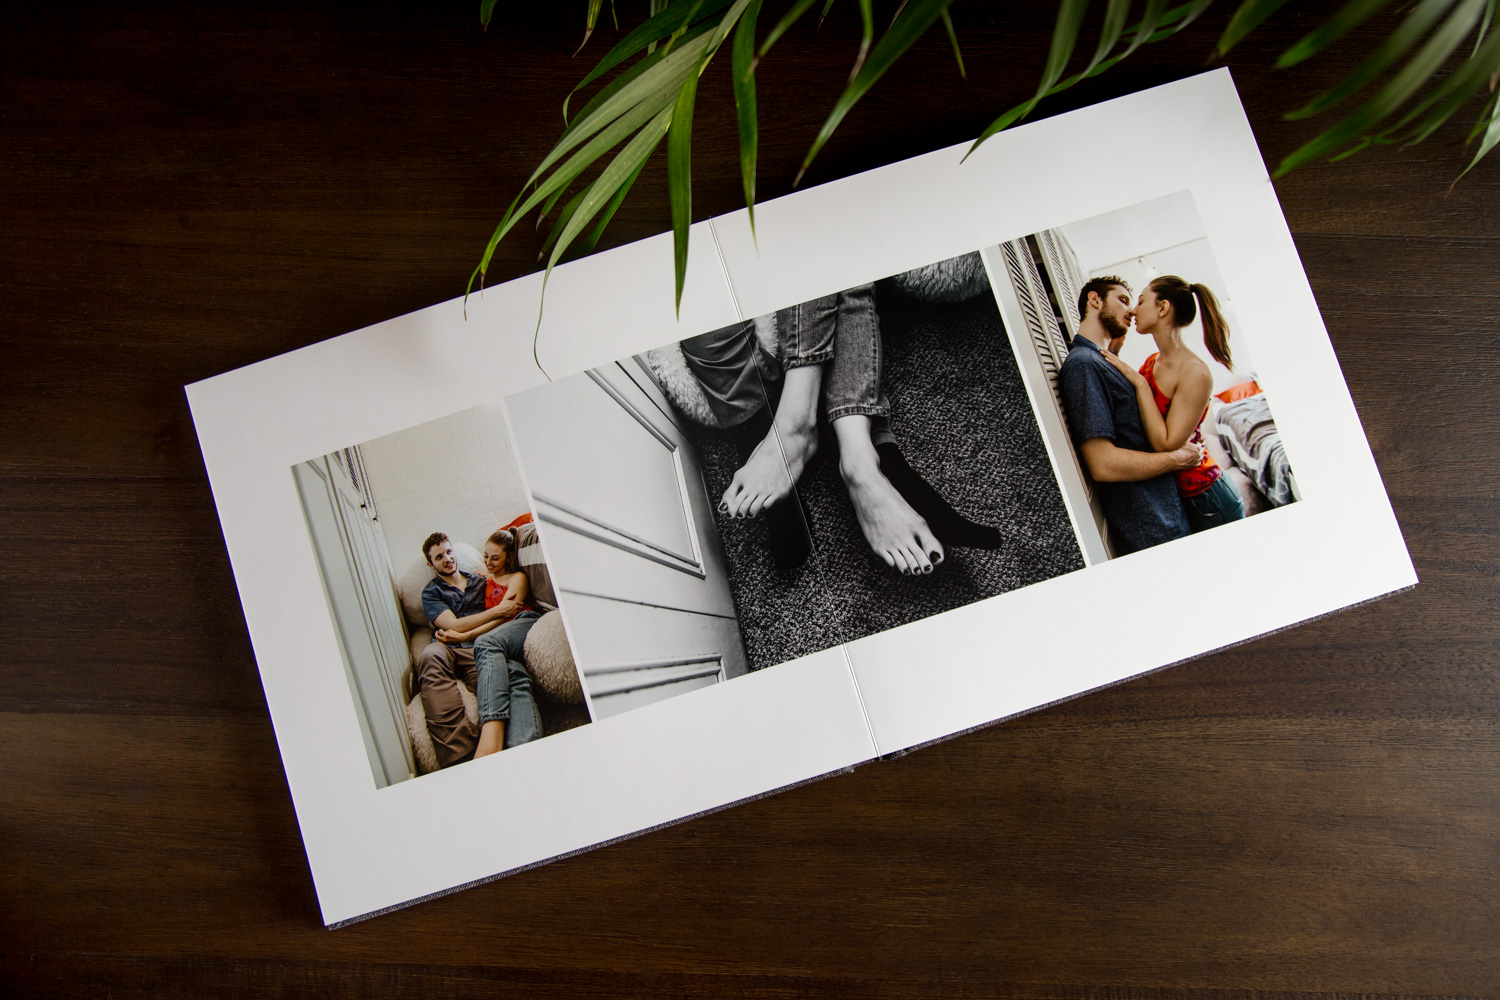 Boise Senior Photographer offering beautiful prints and albums.